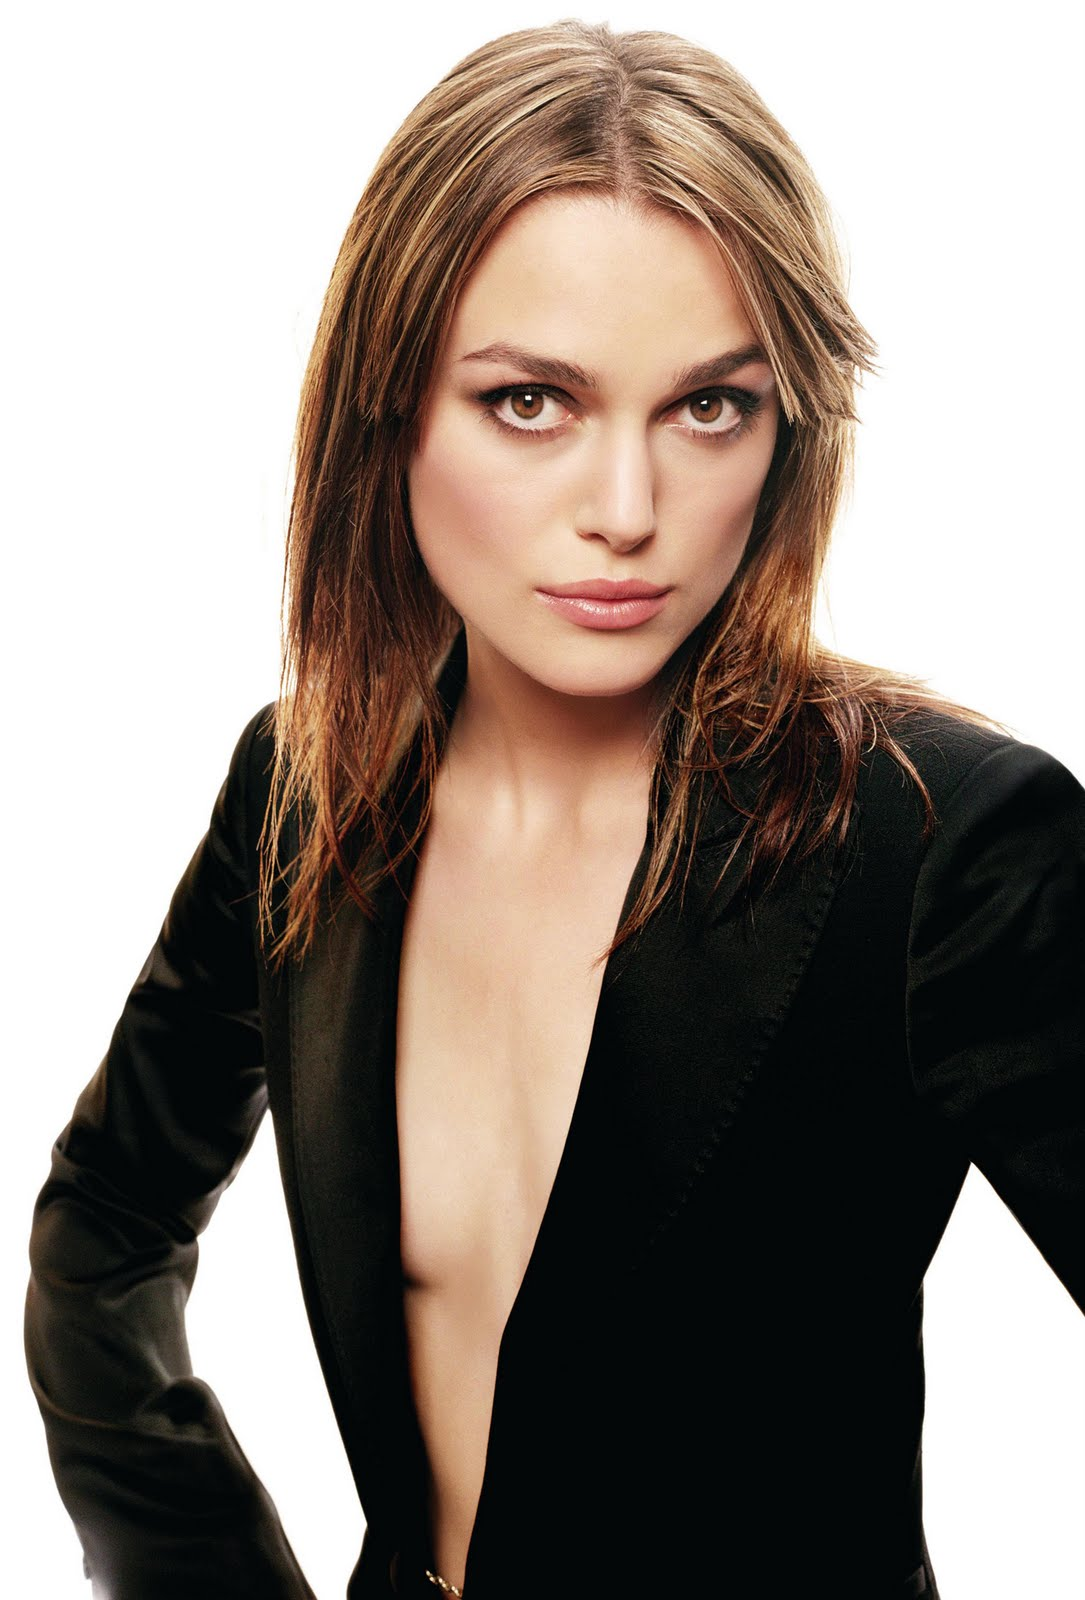 http://3.bp.blogspot.com/_S6R70kUnxi0/TE_MYqnTZlI/AAAAAAAAAe0/mTggDIaqMOM/s1600/Keira-Knightley-Blowing+Hot+photos+%2810%29.jpg